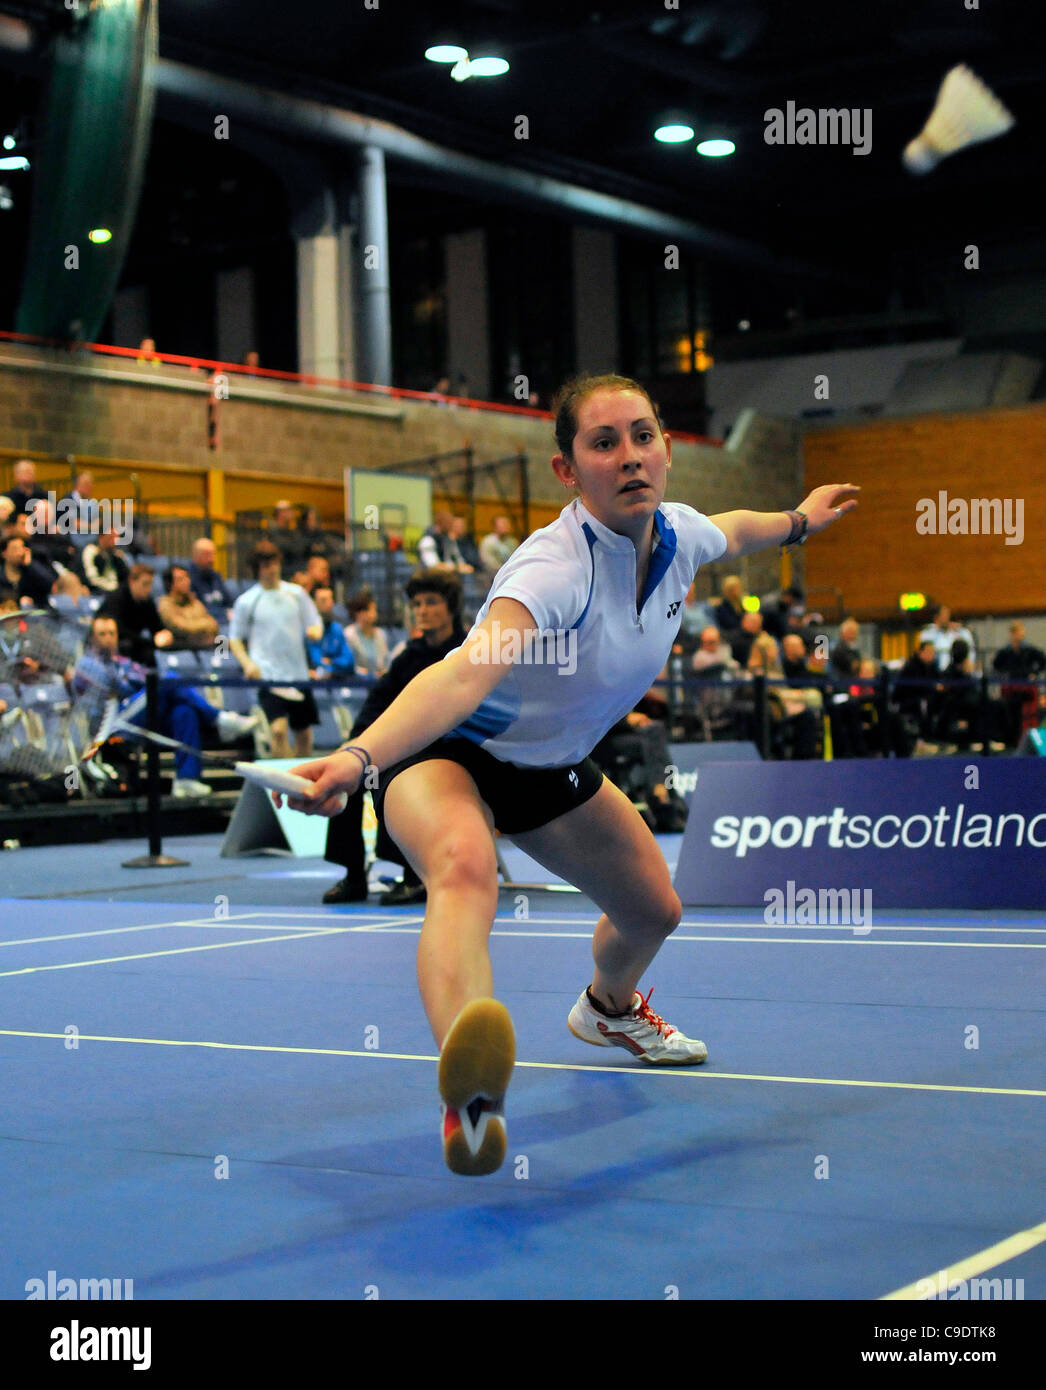 24 11 2011 Scottish International Badminton Championships from the